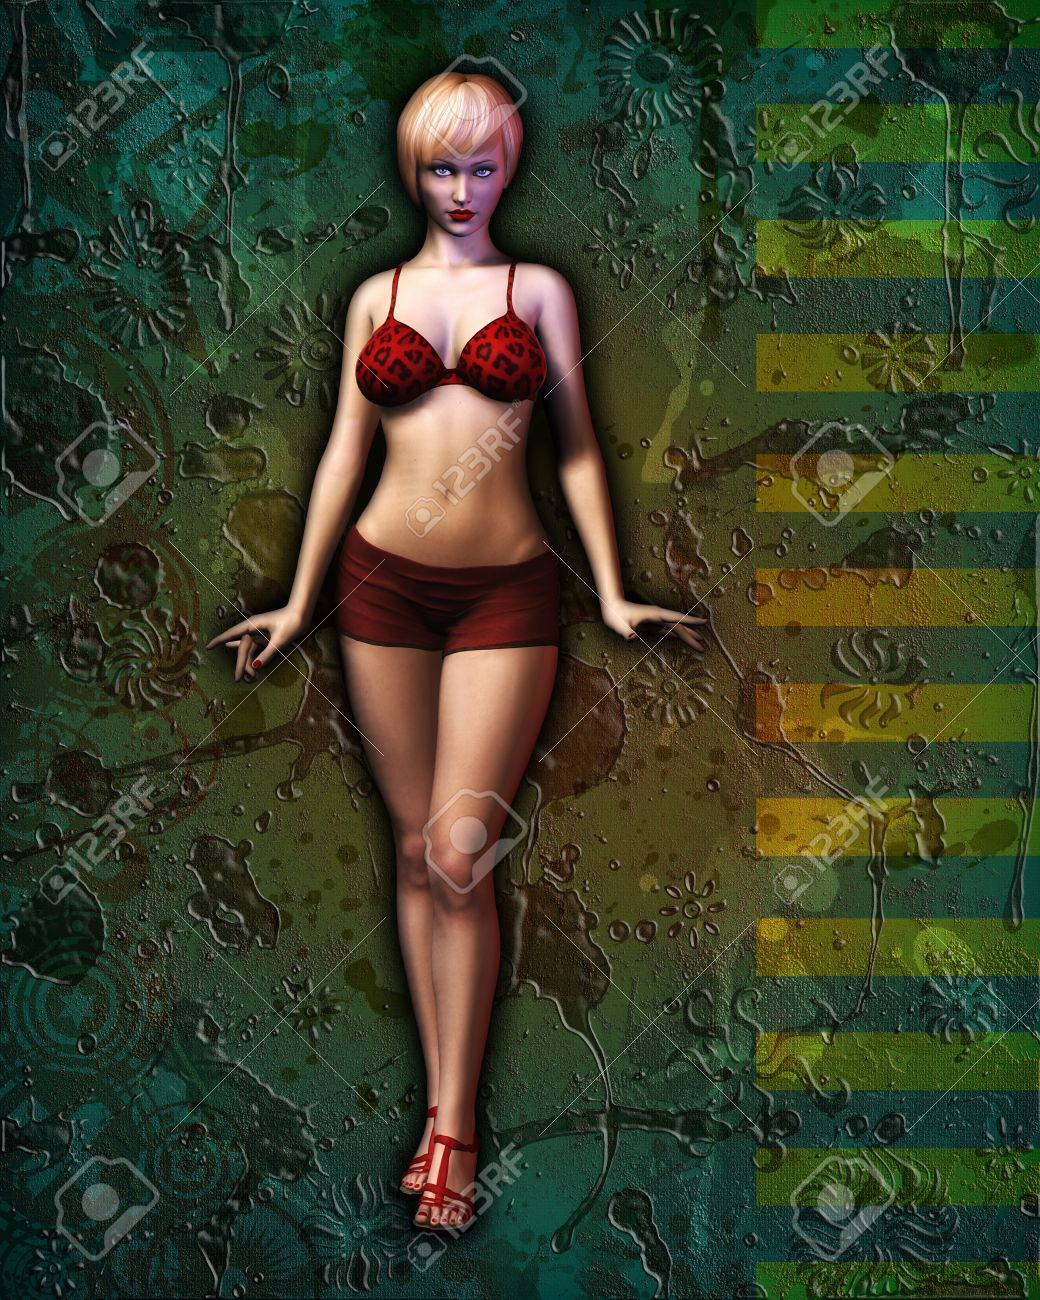 Digital illustration of an illustrated, sexy girl in bikini posing against artistic grunge abstract background. Stock Photo - 12474860